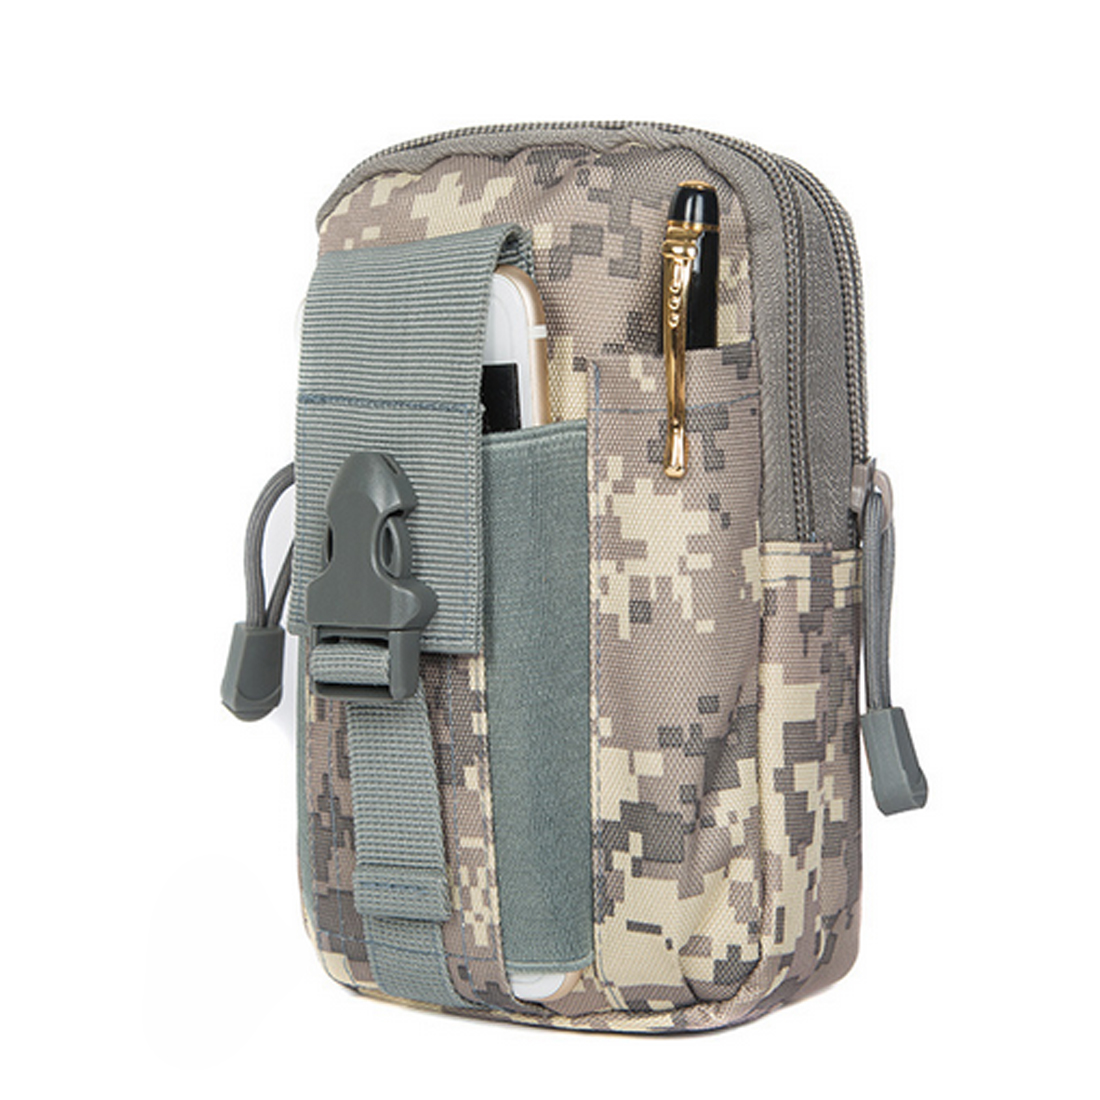 Men Tactical Molle Pouch Belt Waist Pack Bag Outdoor Camping Soft Back Backpack Sport Running Pouch Travel Bags